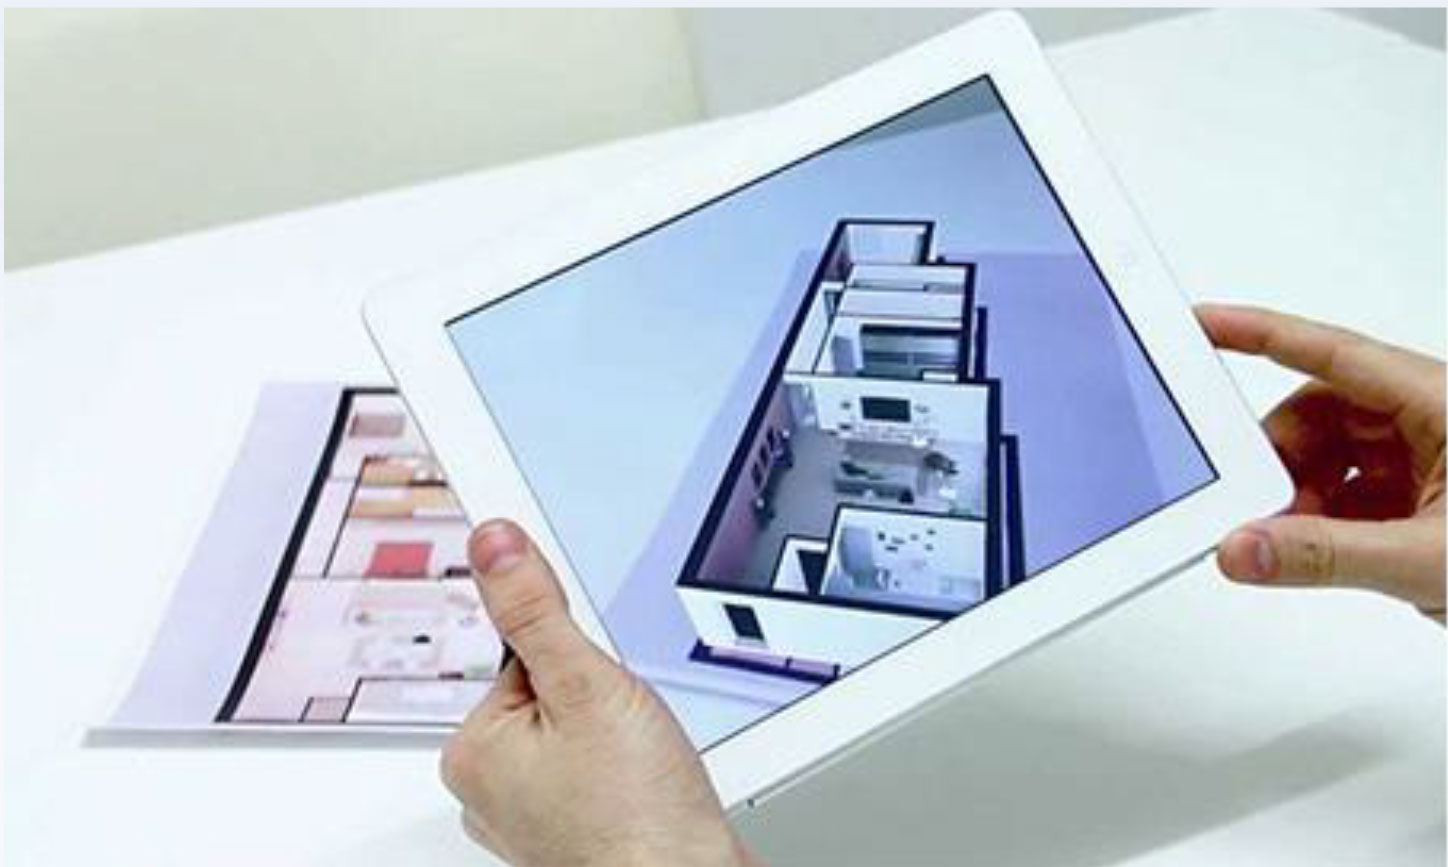 AR on 2D Floor Plan - Higher Resolution enables a better Clarity and Depth